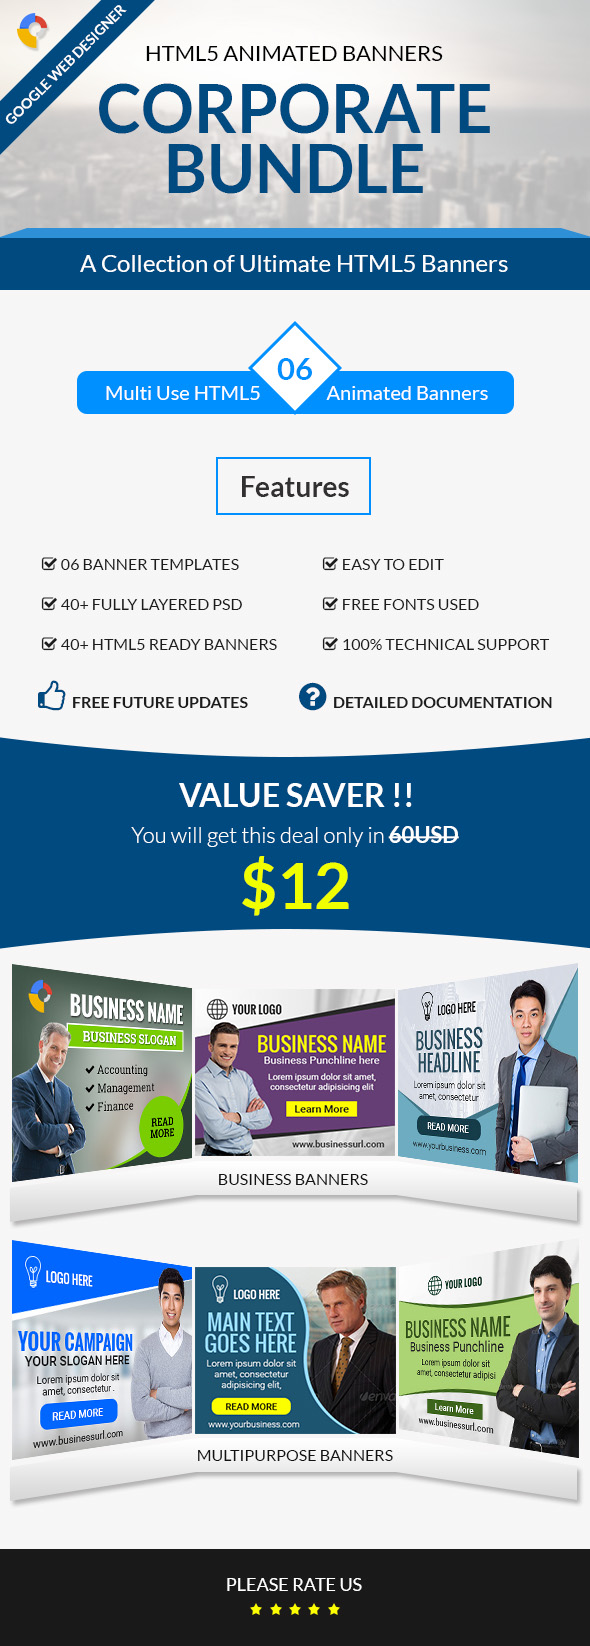 Corporate Bundle 6 in 1 HTML5 Animated Banner Templates